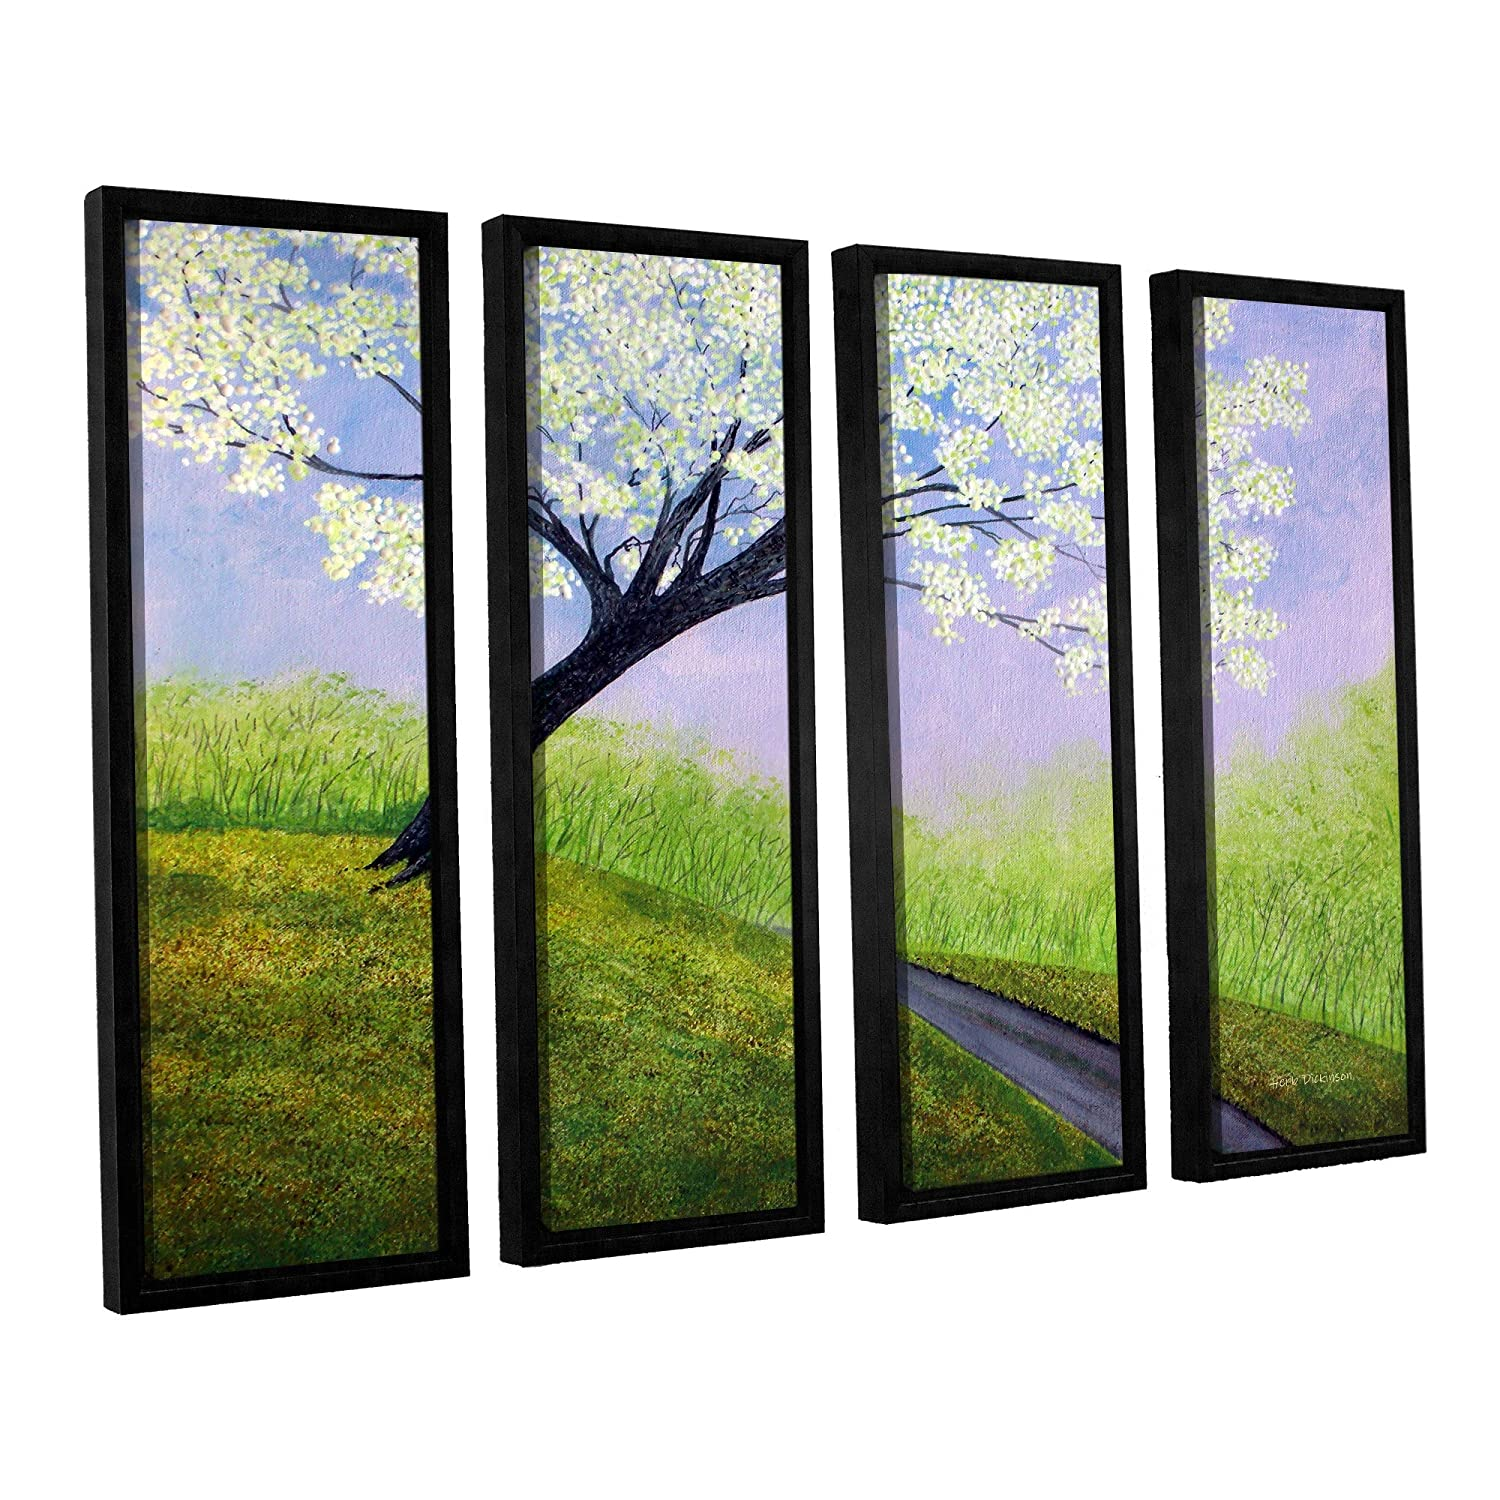 ArtWall 4 Piece Herb Dickinson's Road to Cobbly Nob Floater Framed Canvas Set, 36 x 48'